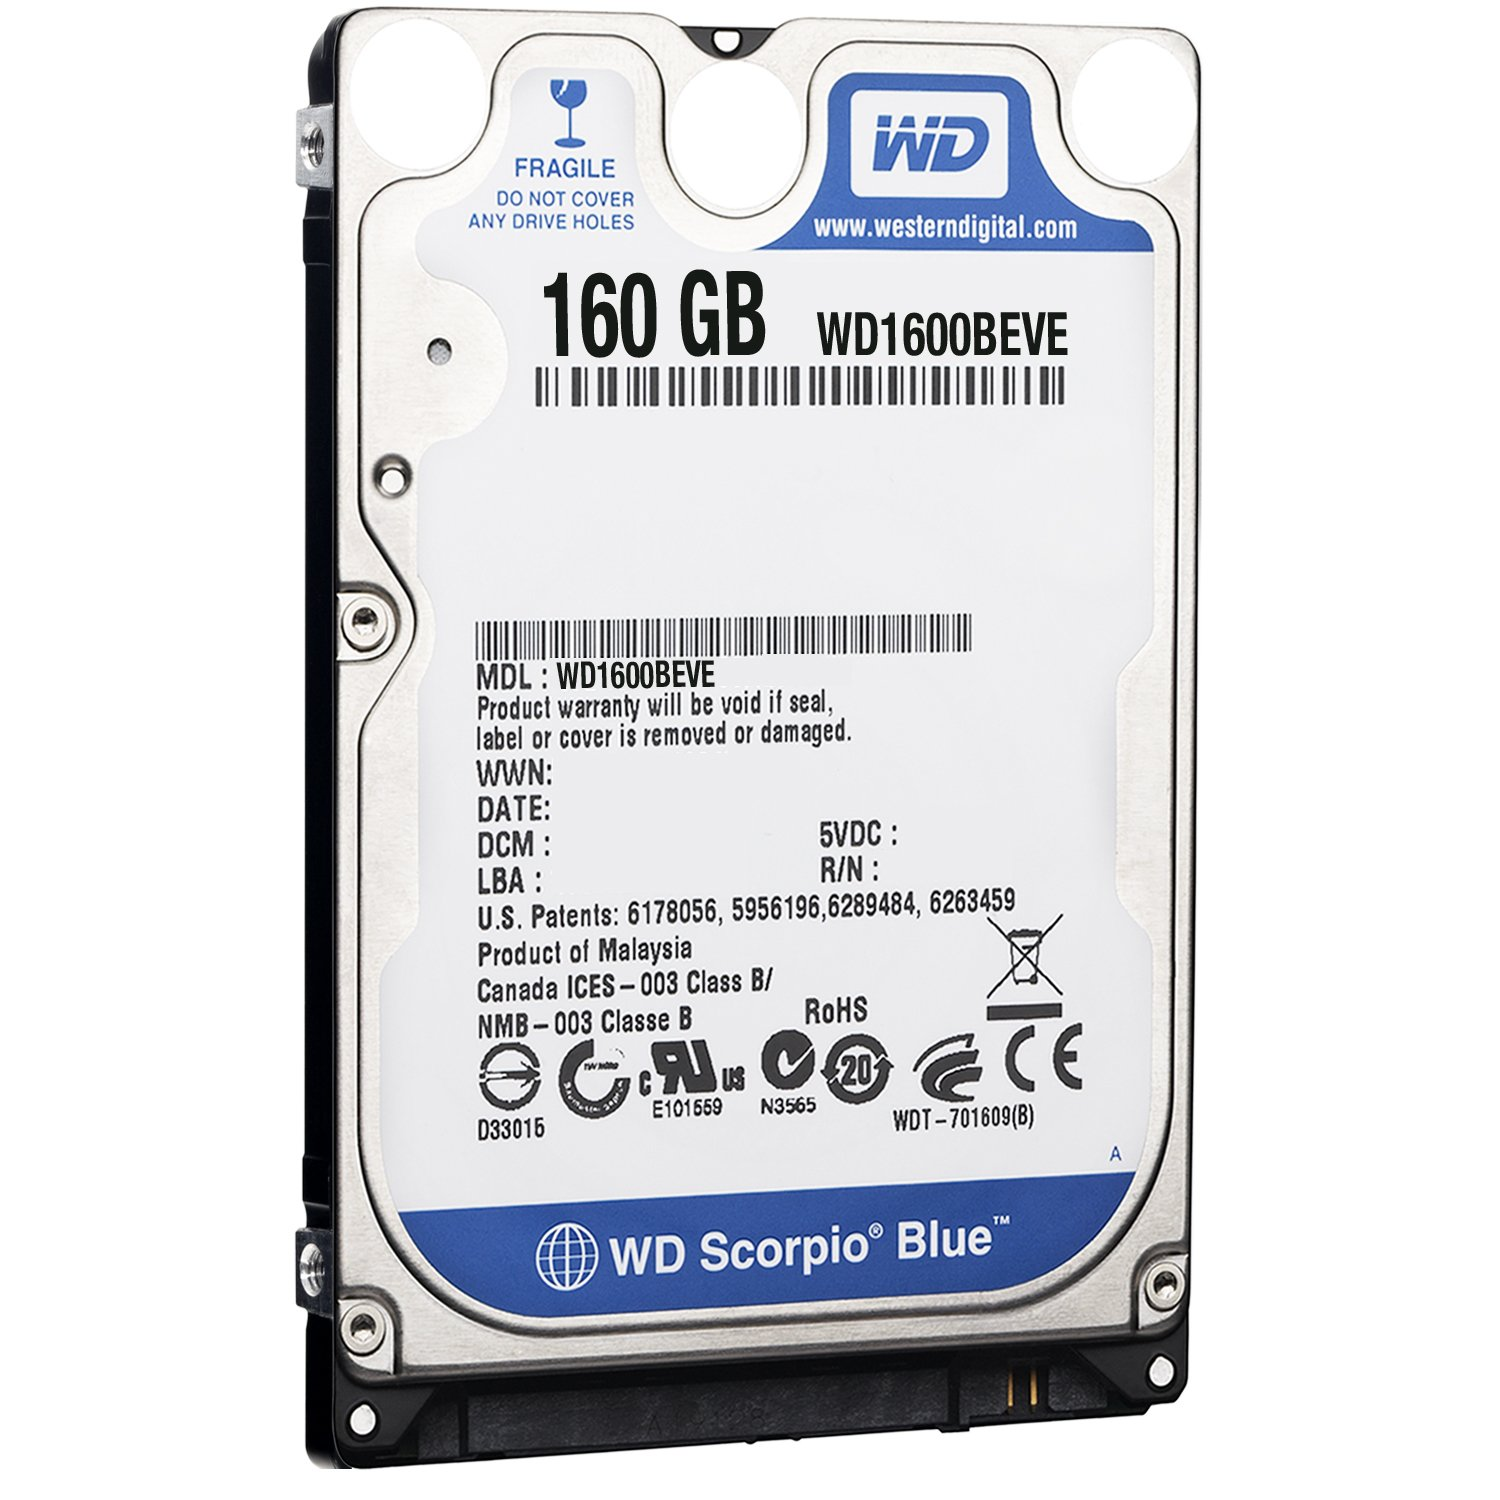 WD Scorpio Blue 160GB EIDE 8MB Cache 2.5 inch Internal Hard Drive OEM